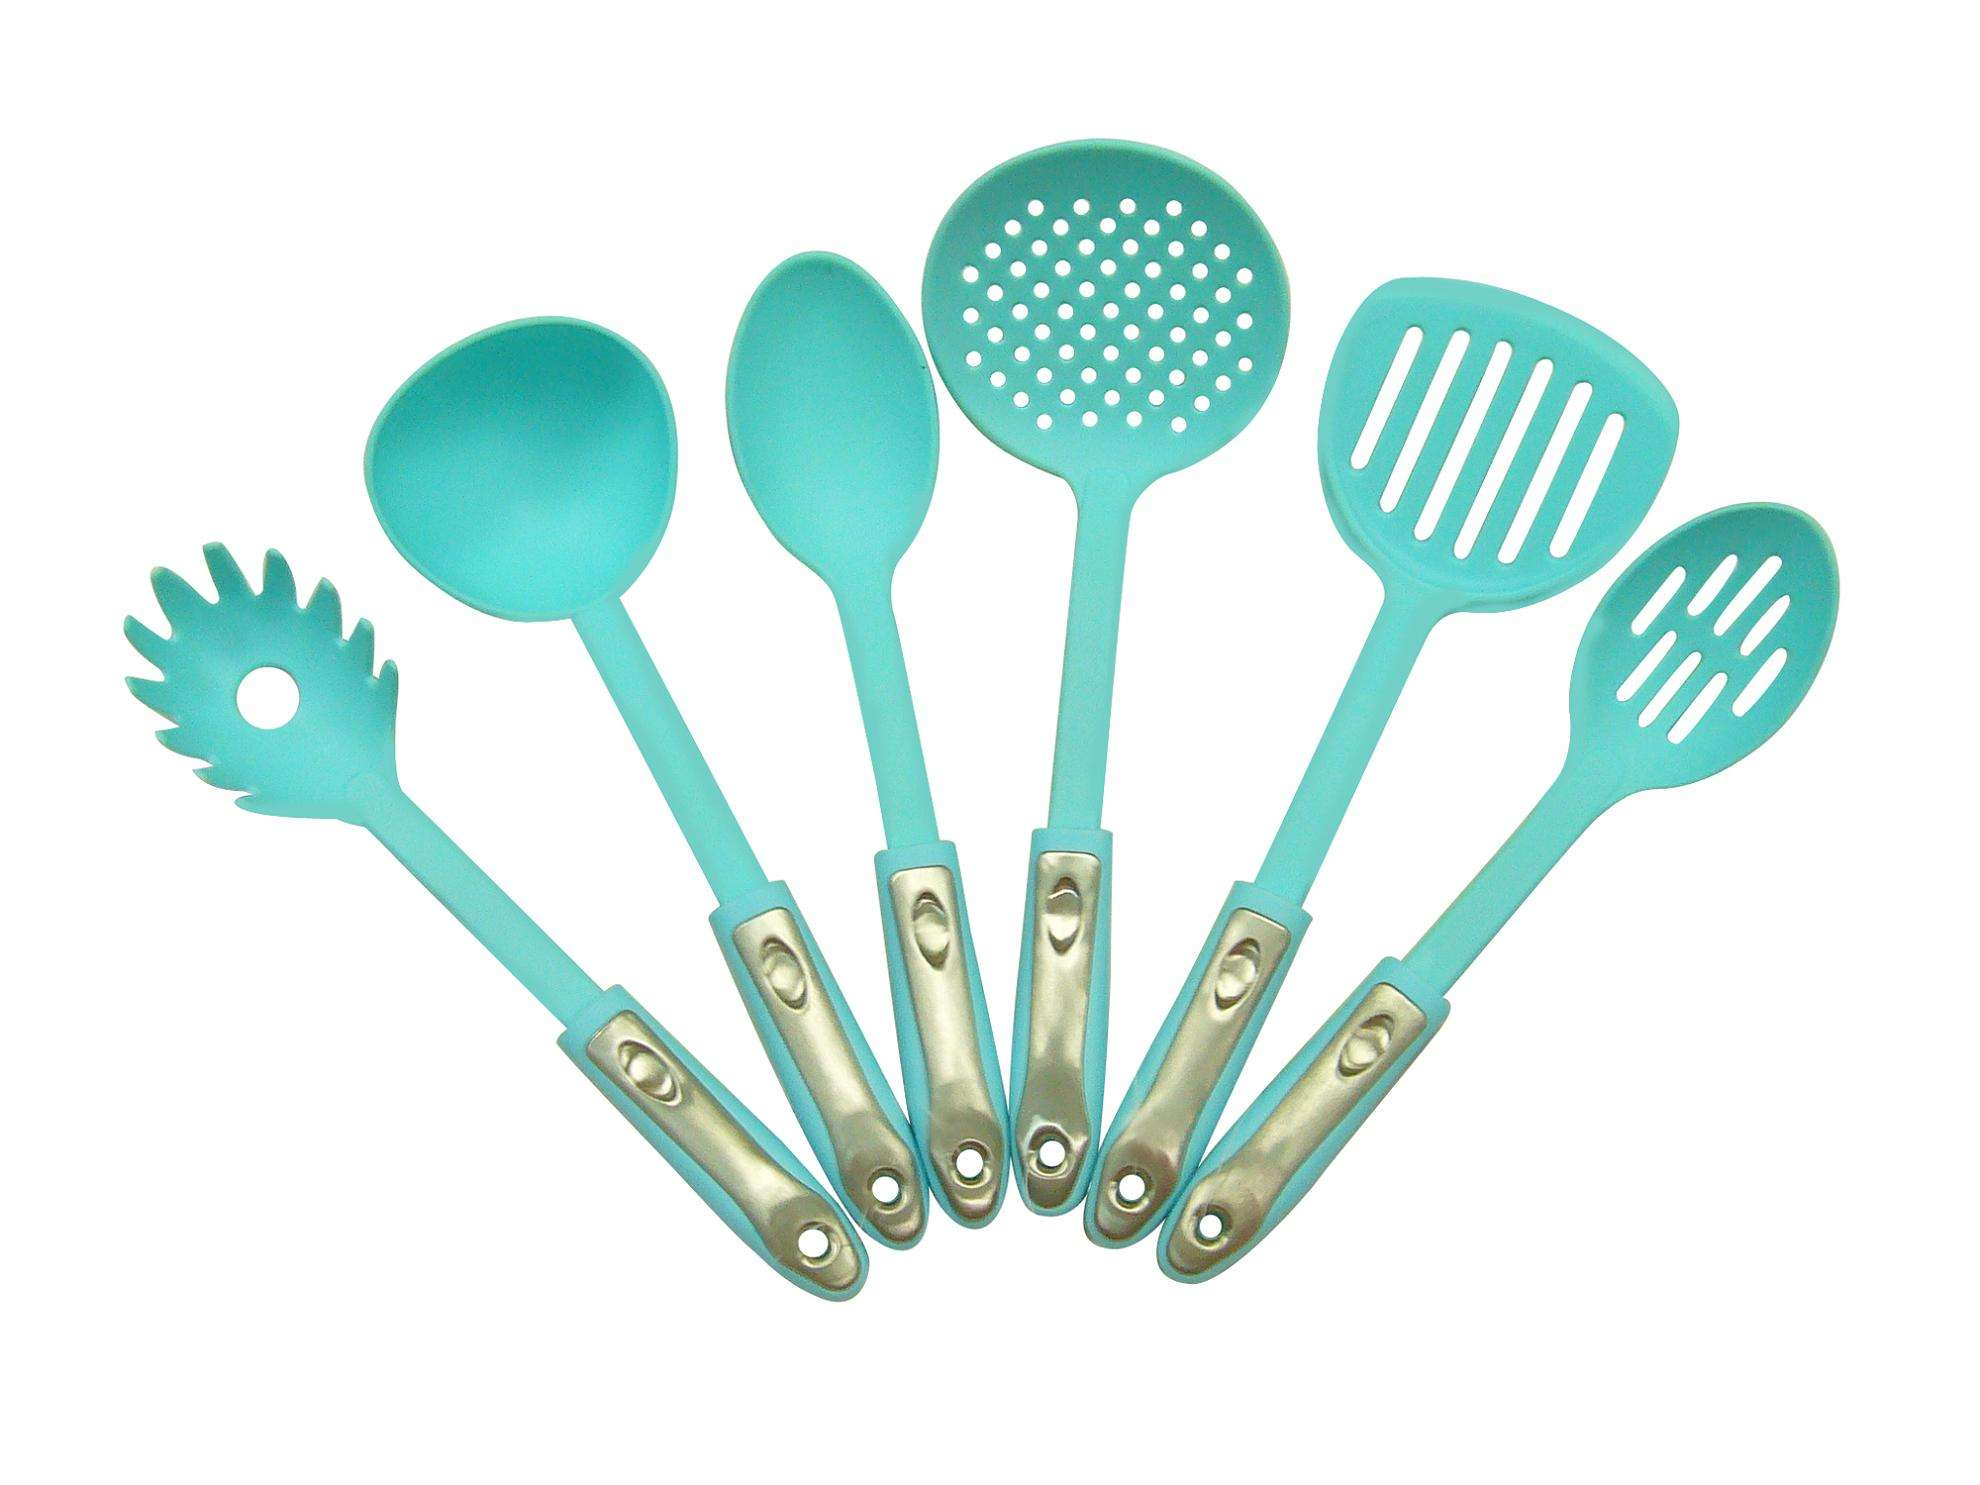 beautiful colorful kitchen utensils pin and more on in design